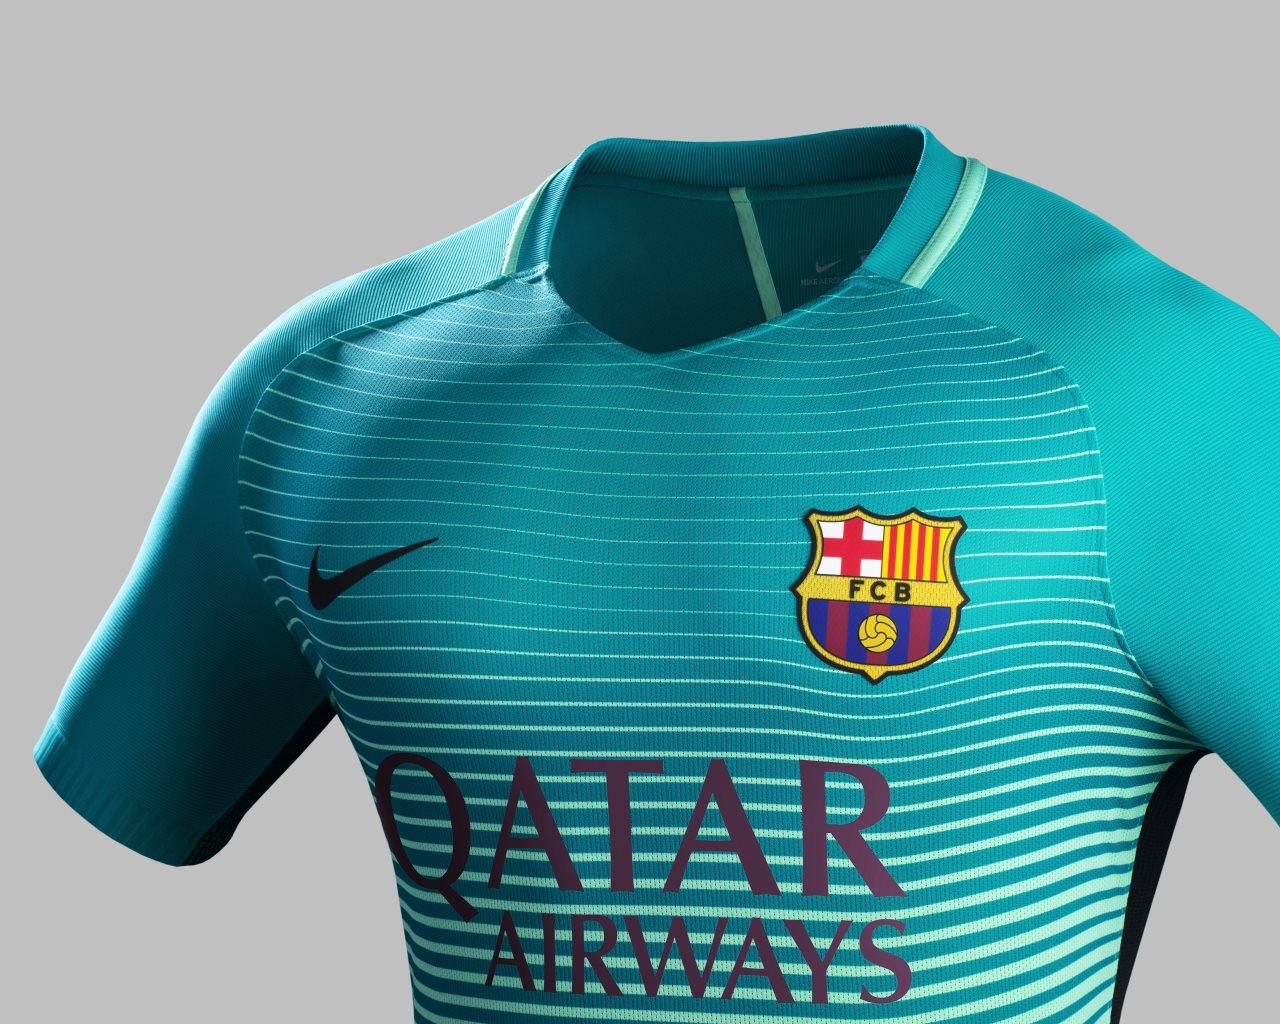 FC Barcelona will wear their third kit for the first time against ...